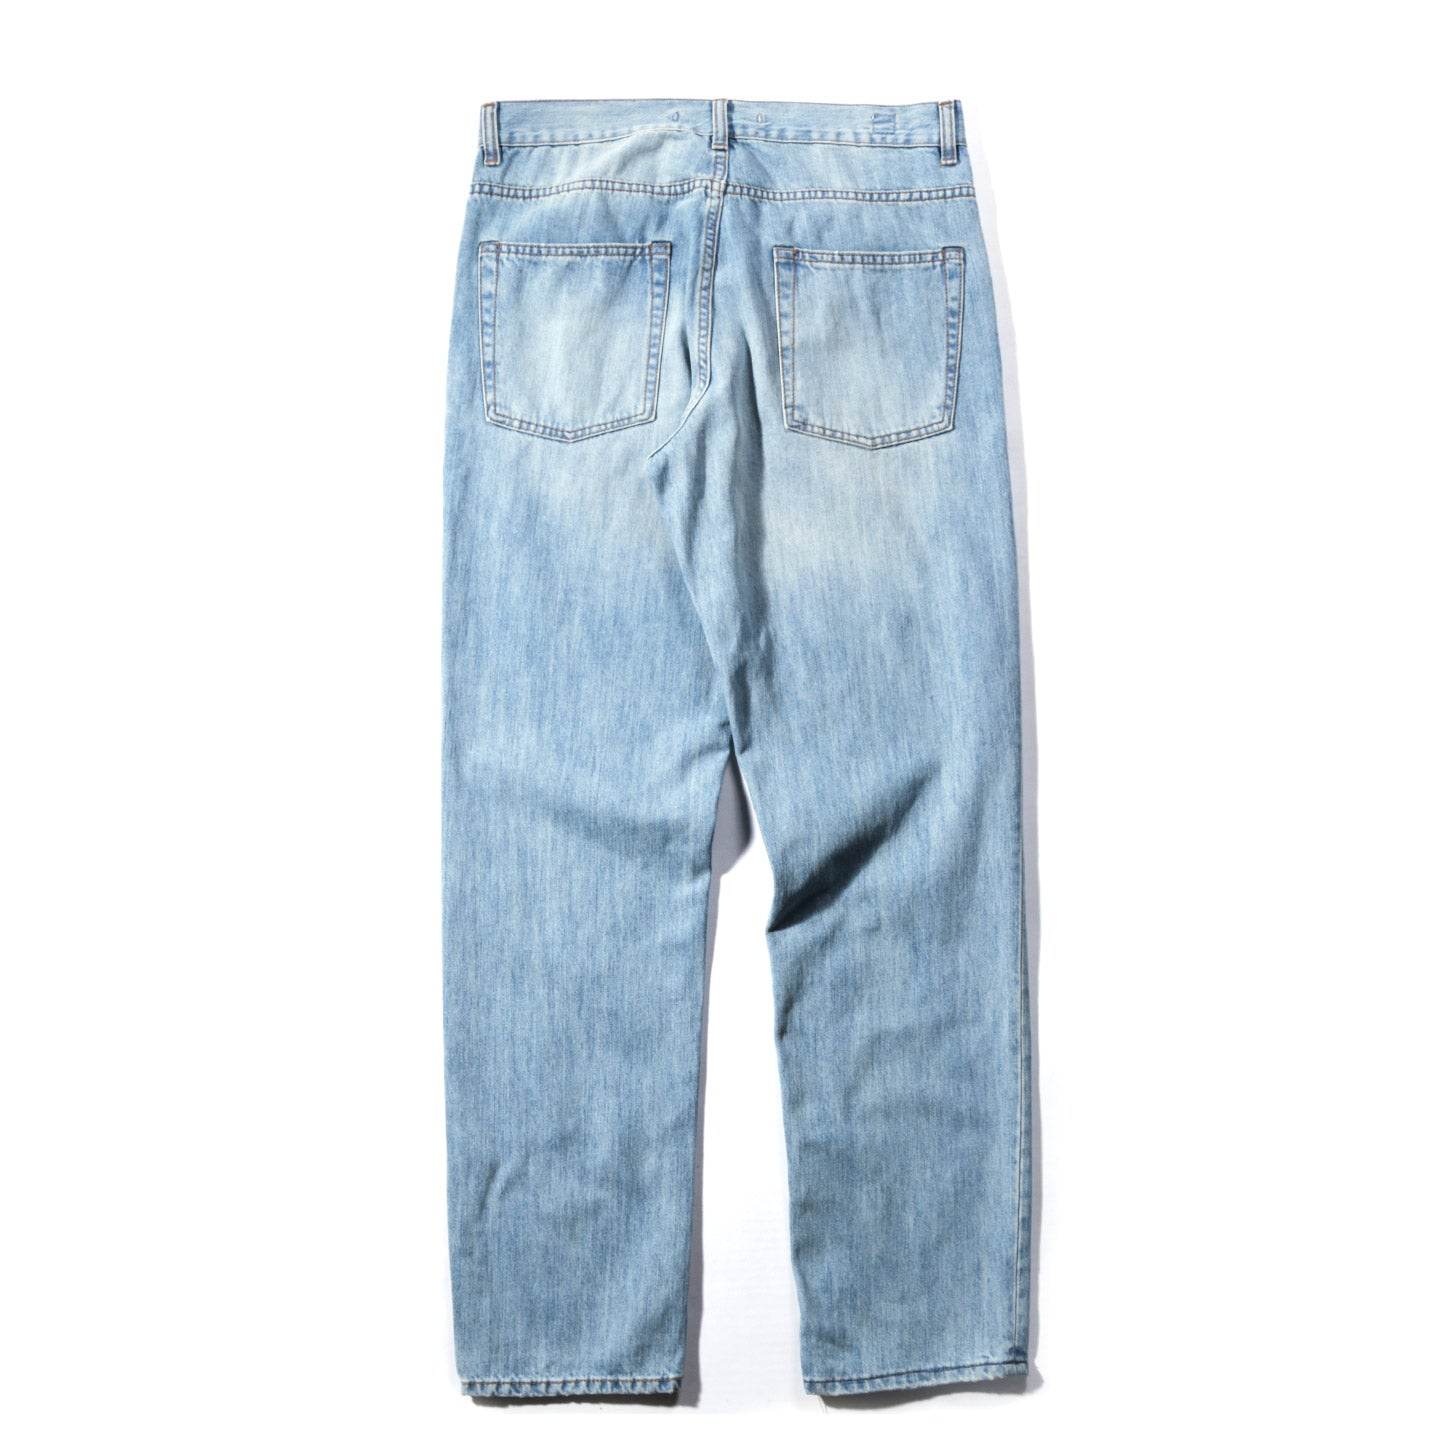 NORSE PROJECTS REGULAR DENIM SUNWASHED